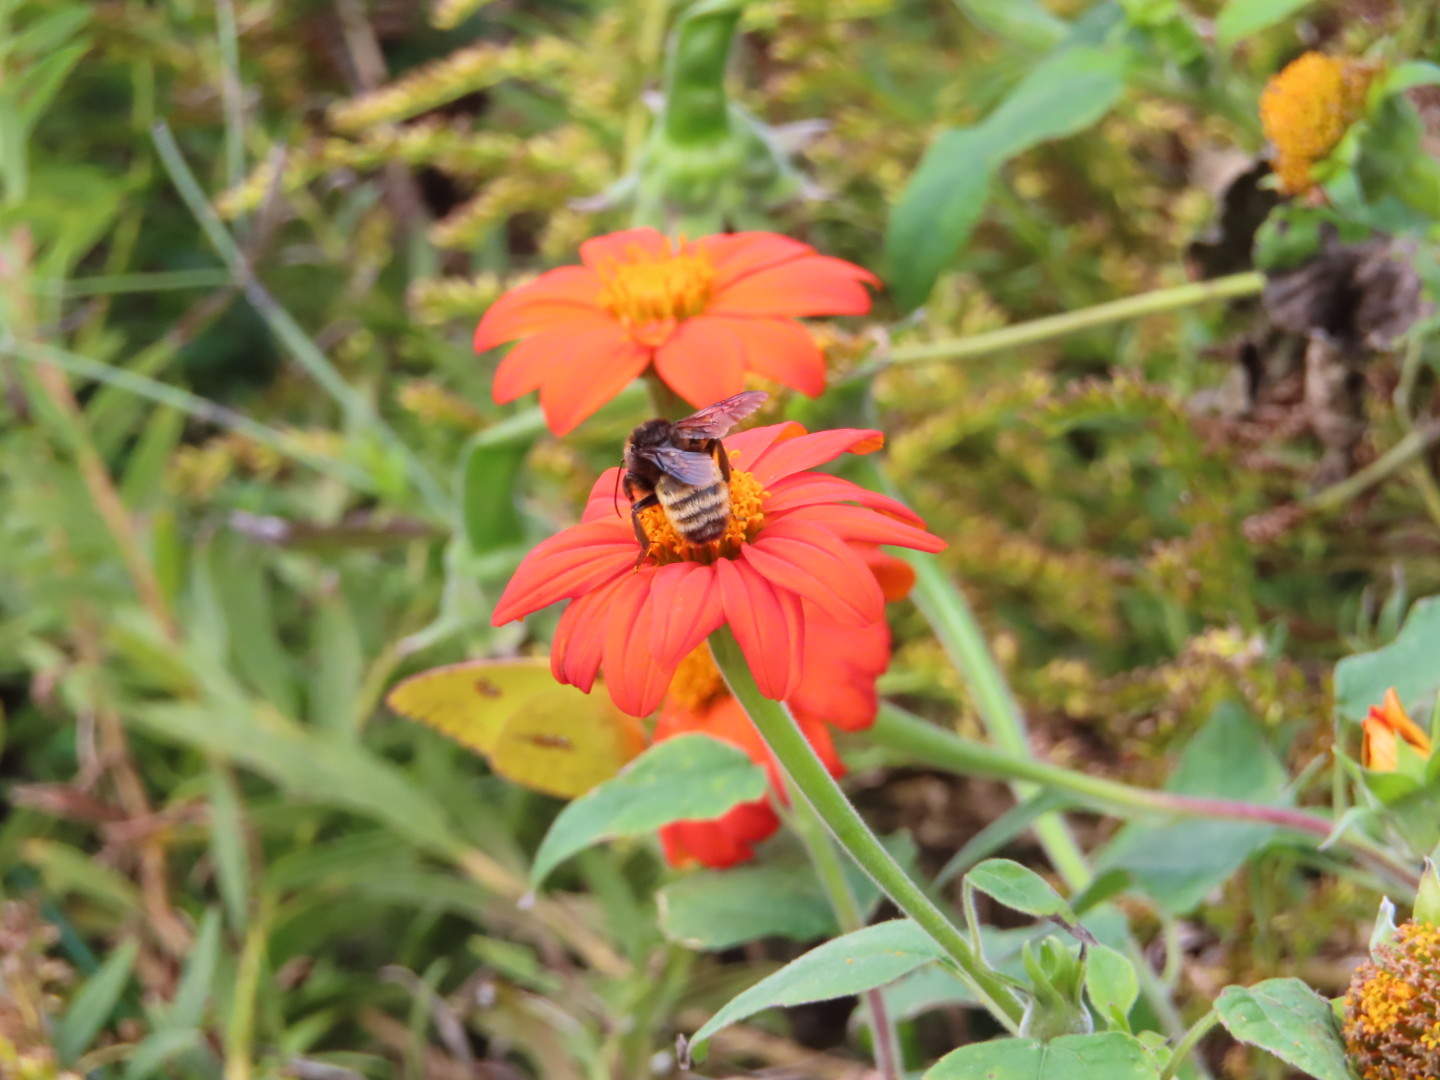 Mexican Sunflower4 Nov 19